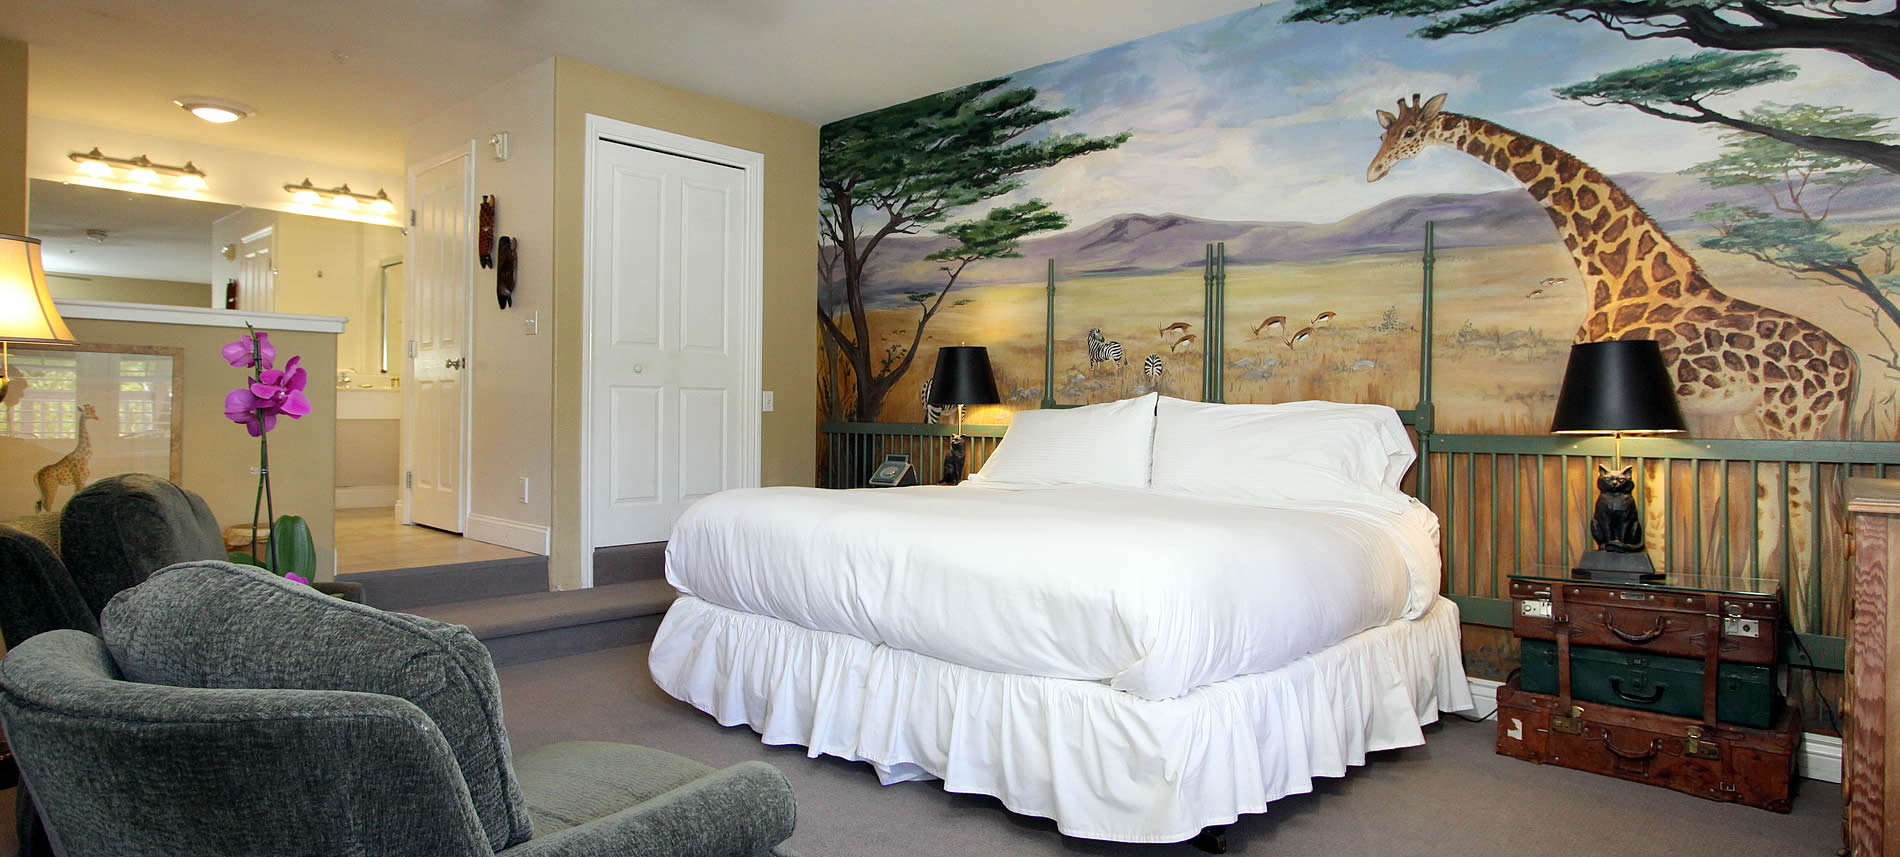 safari room sonoma wine country inn